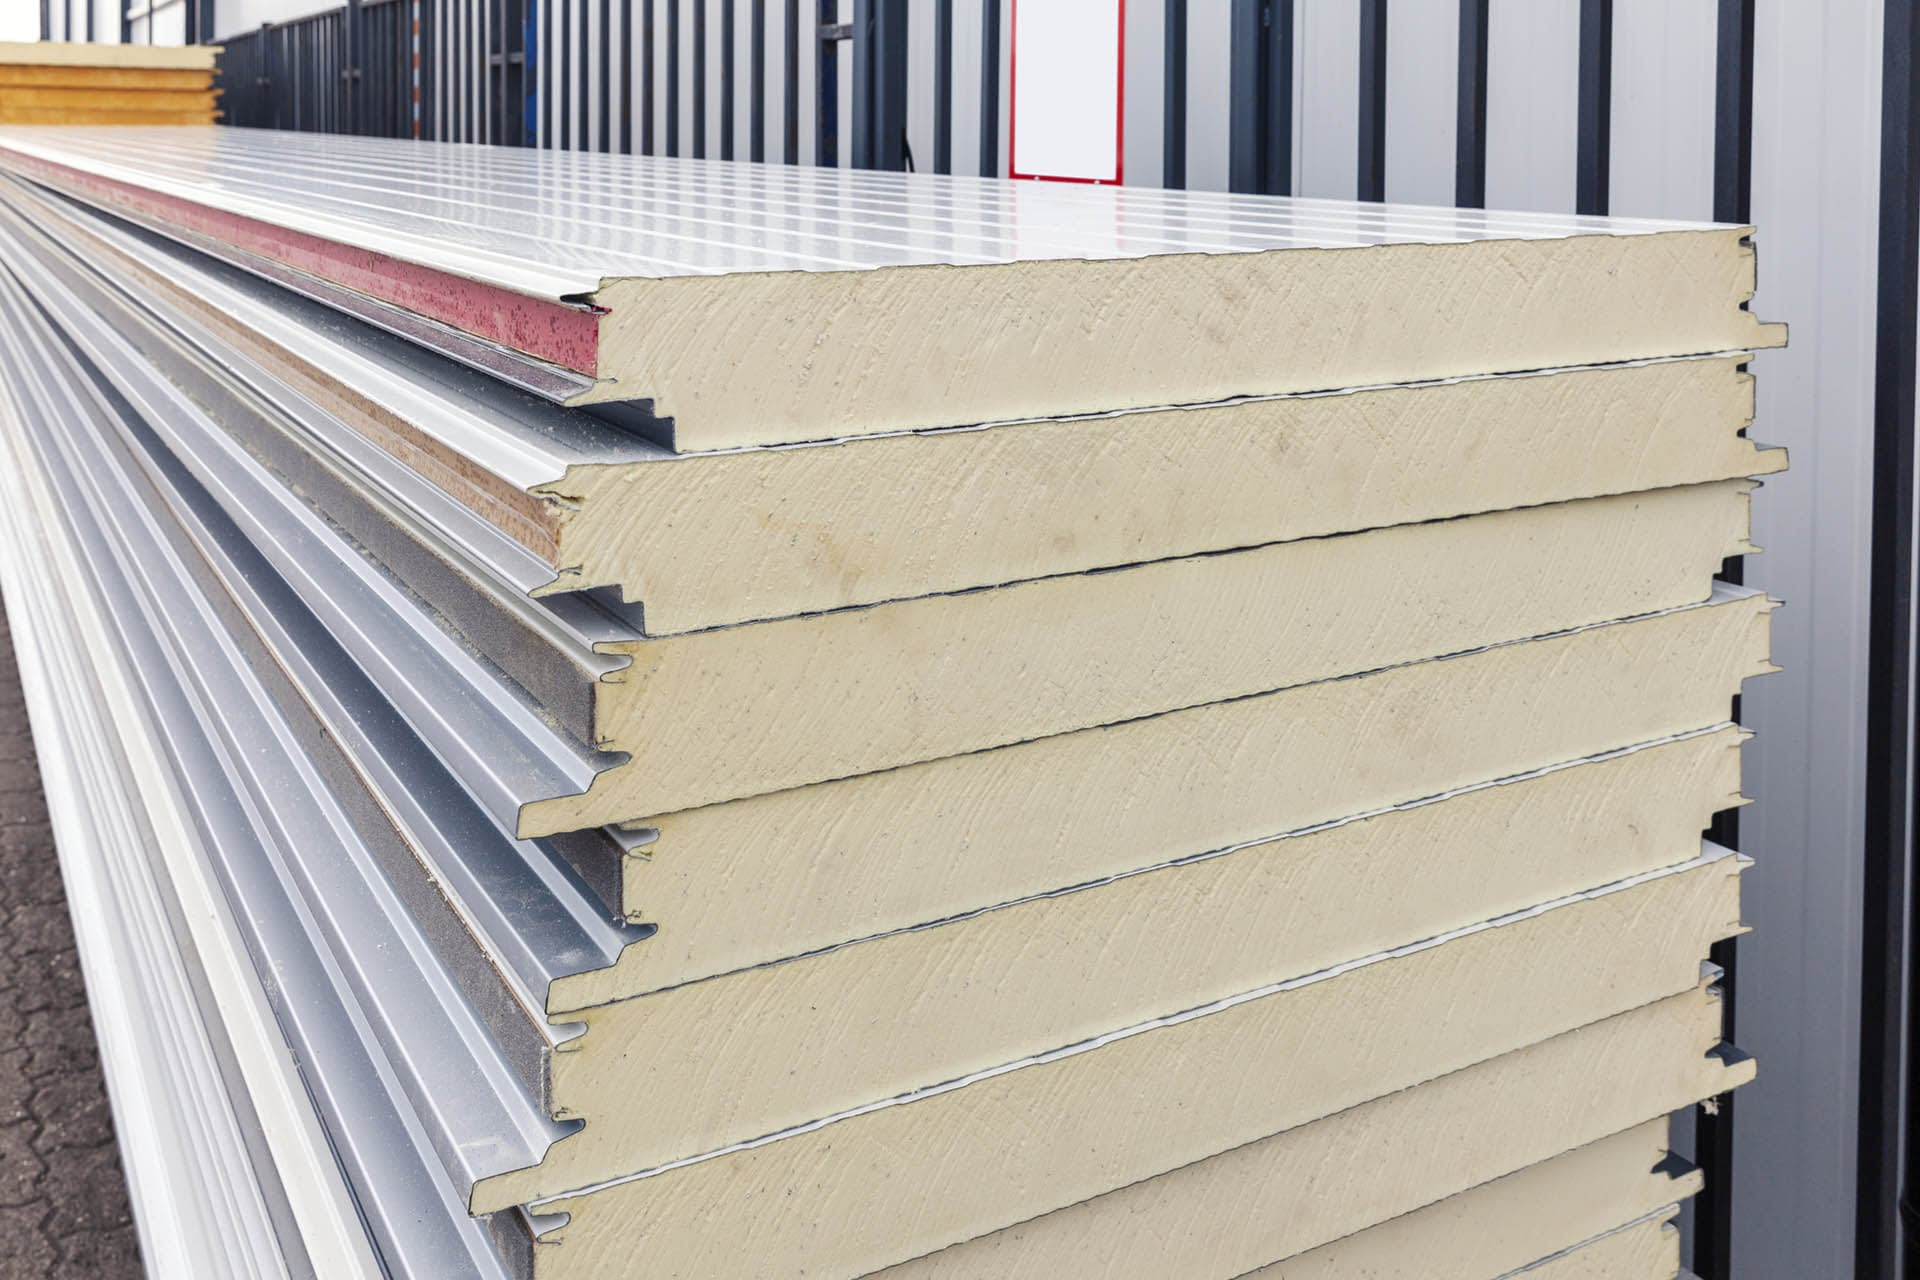 insulation-foam-board-building-materials-stacked-yard